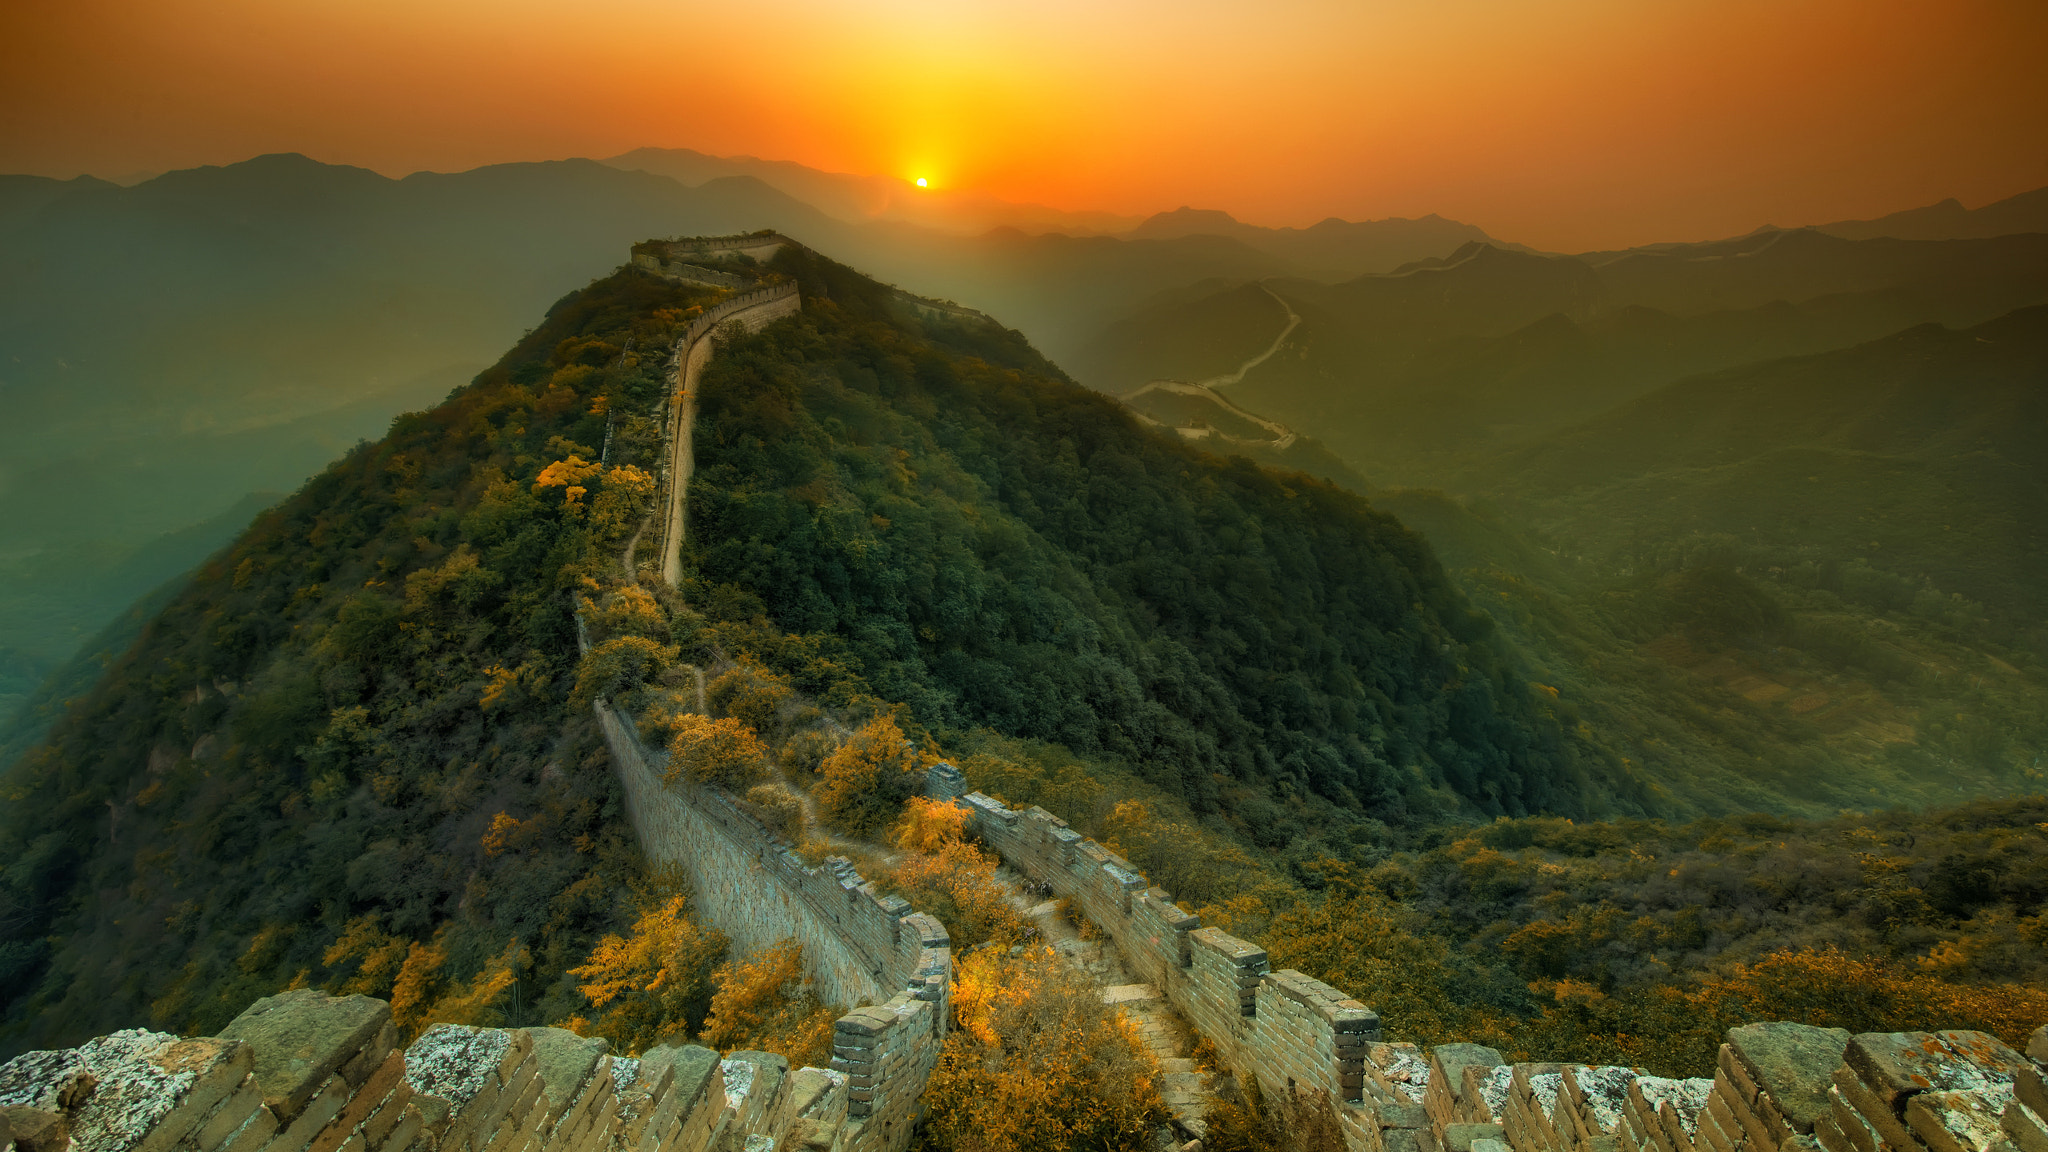 Photograph The Great China Wall by Kashaan Pansoota on 500px